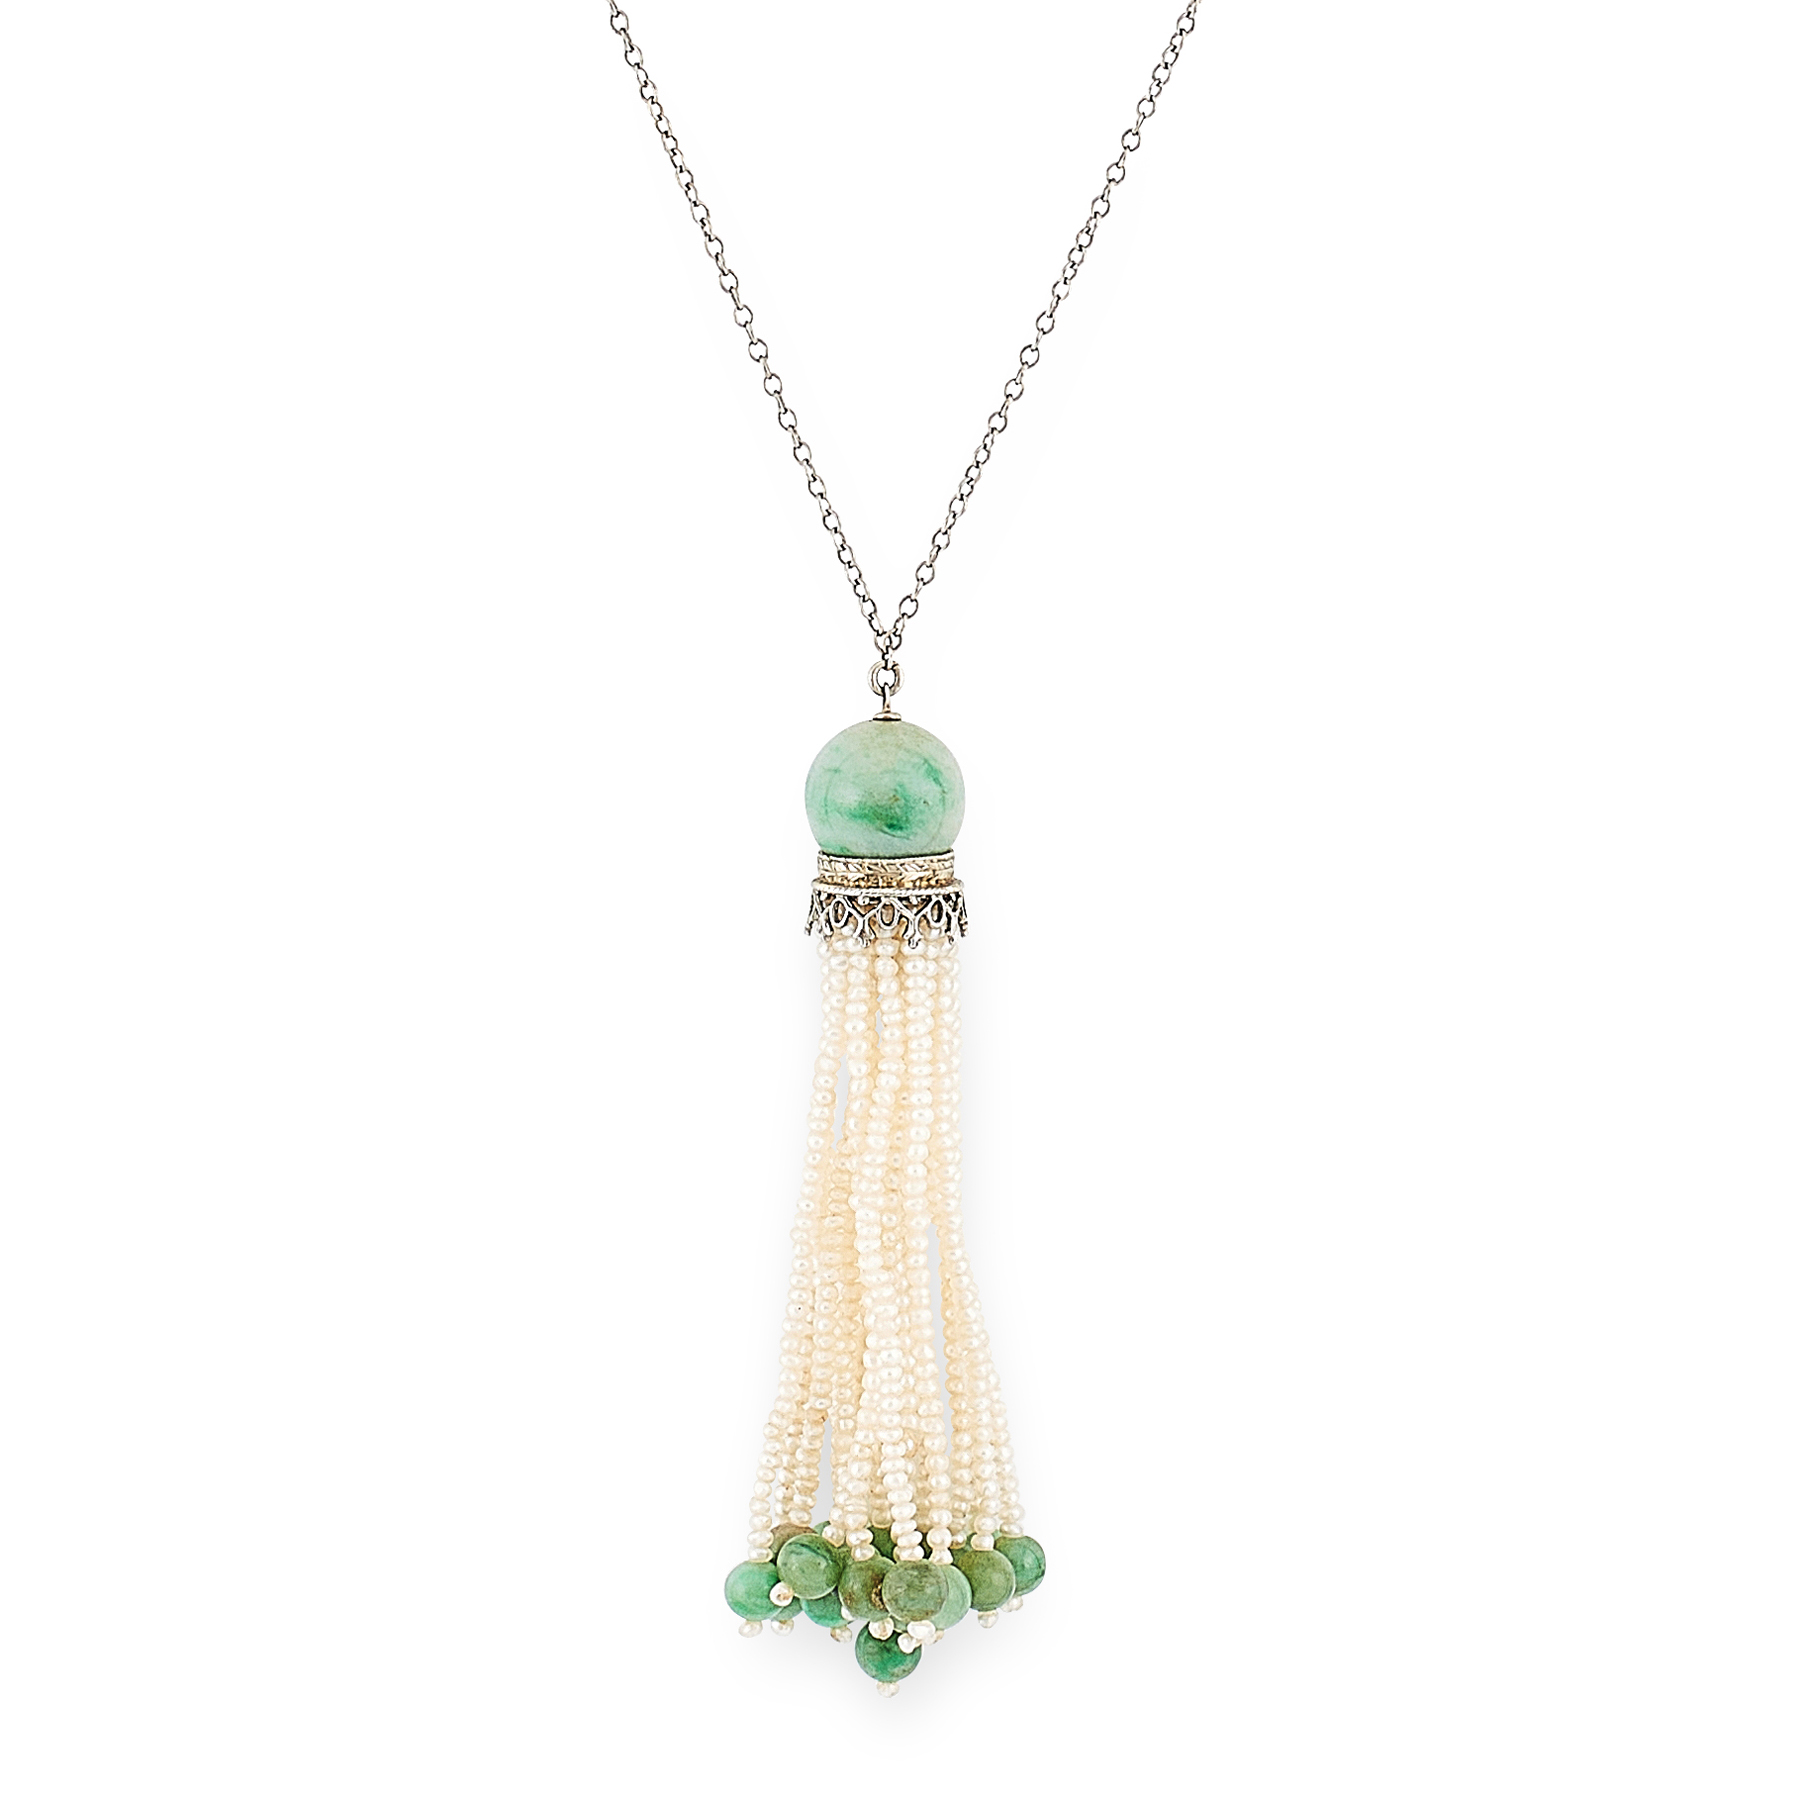 AN ART DECO PEARL AND JADEITE JADE TASSEL PENDANT NECKLACE CIRCA 1930 in white gold, the pendant